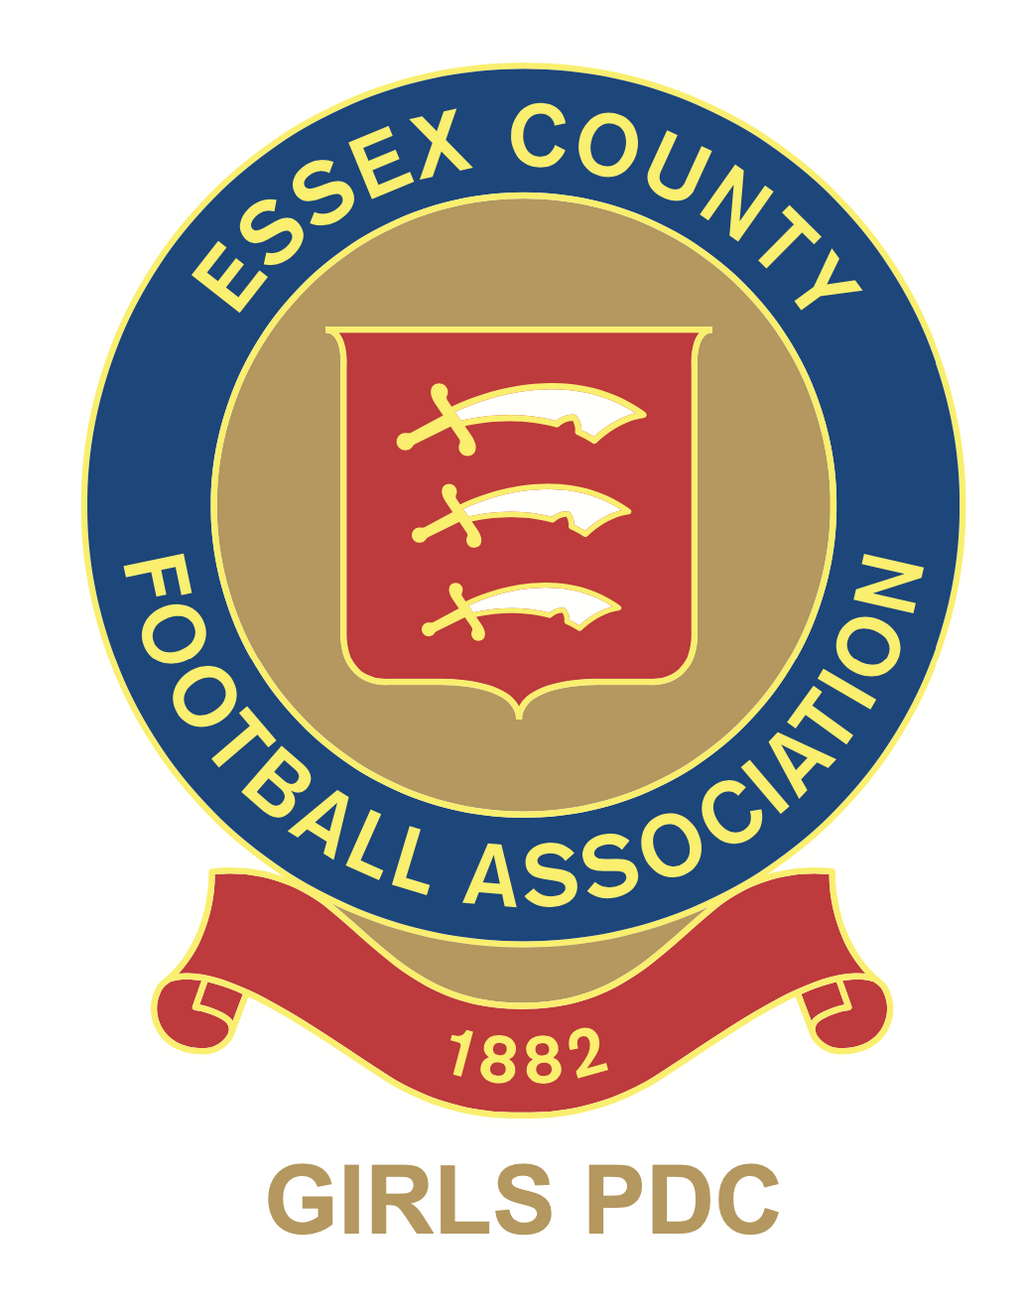 ESSEX | Player Development Centre: Register Interest - SHE CAN PLAY